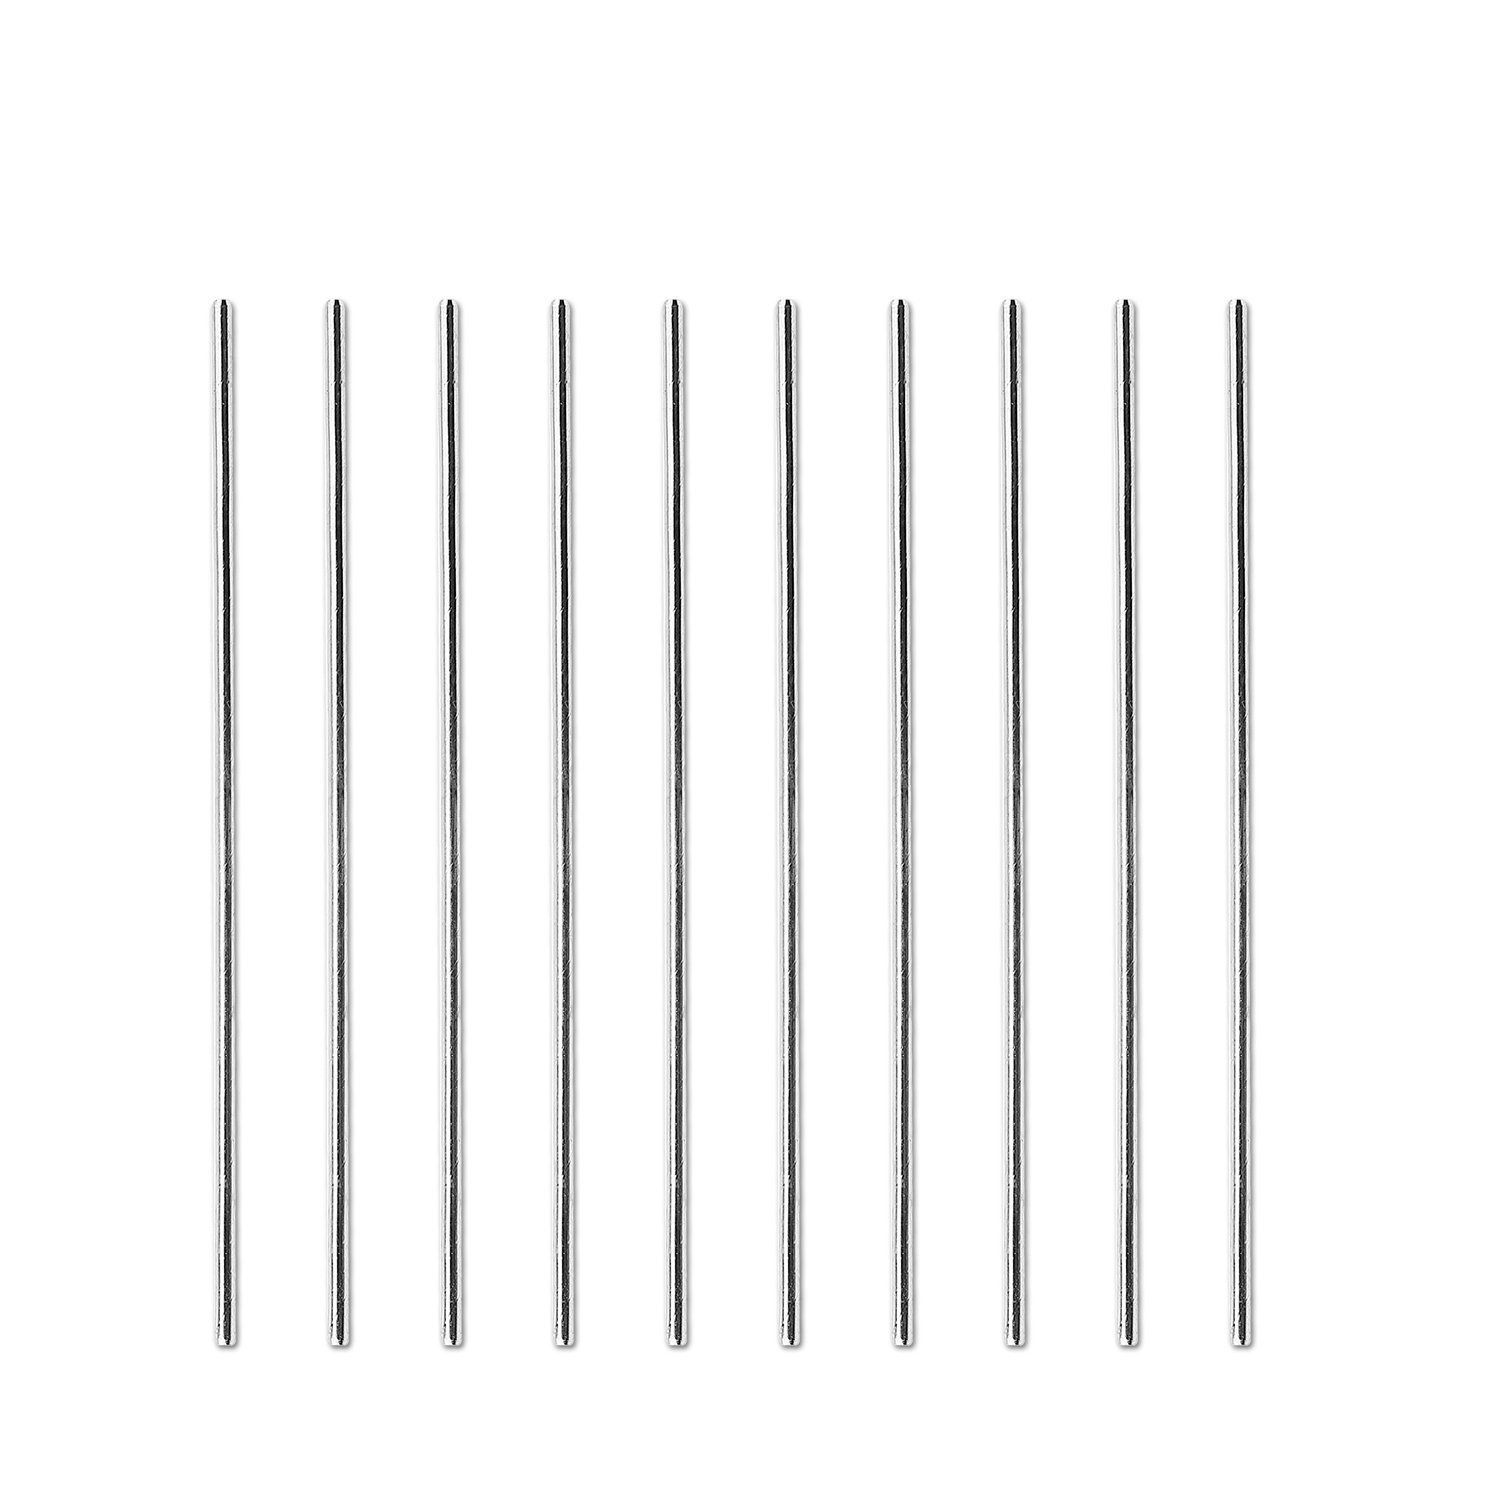 Retail 15Pcs HSS Rod 1mm Dia 100mm Long Lathe Tool Round Rod For Lathe Stock Replacement High Speed Steel Turning Lathe Bar Rod